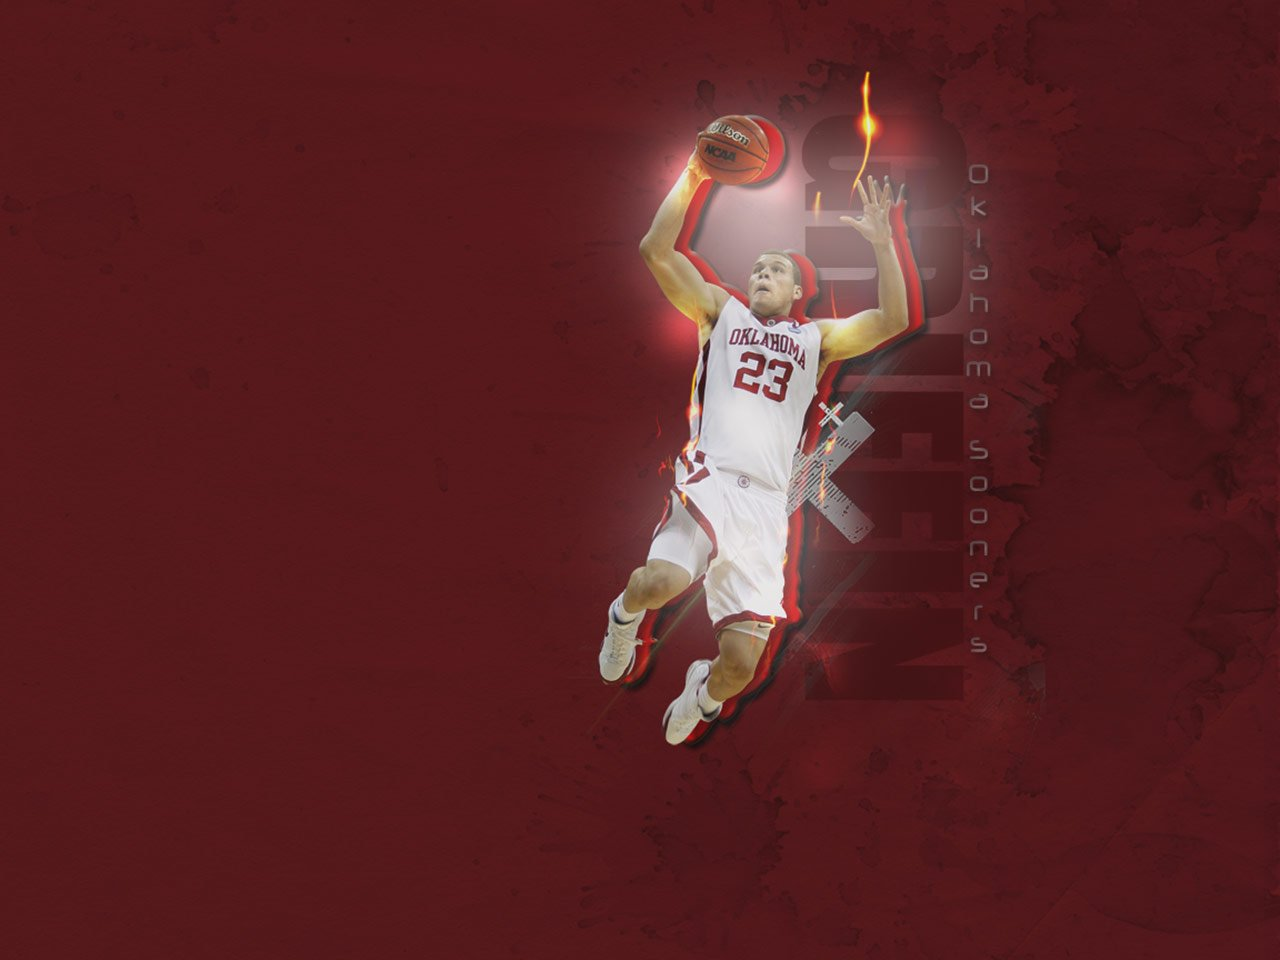 Griffin Oklahoma Sooners Wallpaper 1280960 102678 HD Wallpaper 1280x960